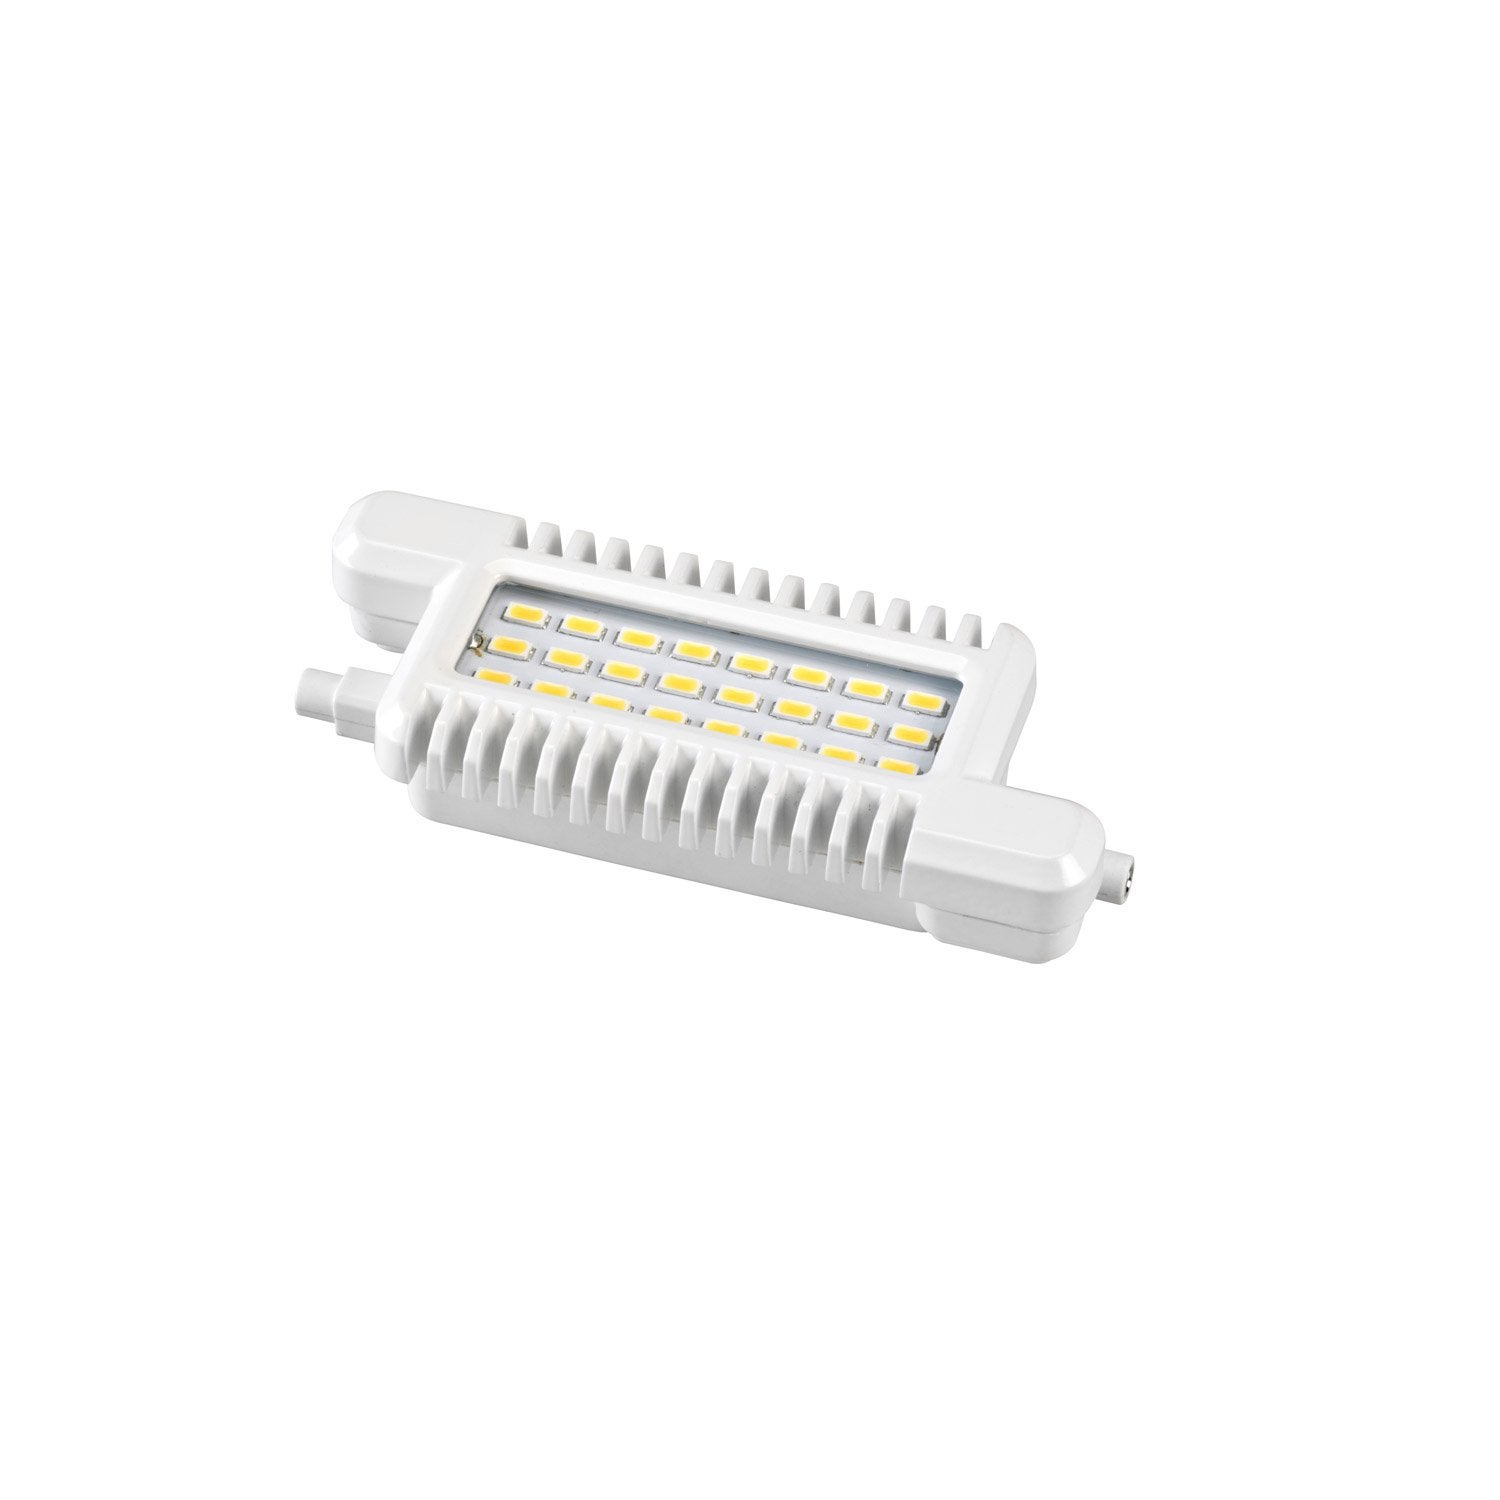 Perforateur burineur brico depot marteau perforateur sds for R7s led 78mm leroy merlin